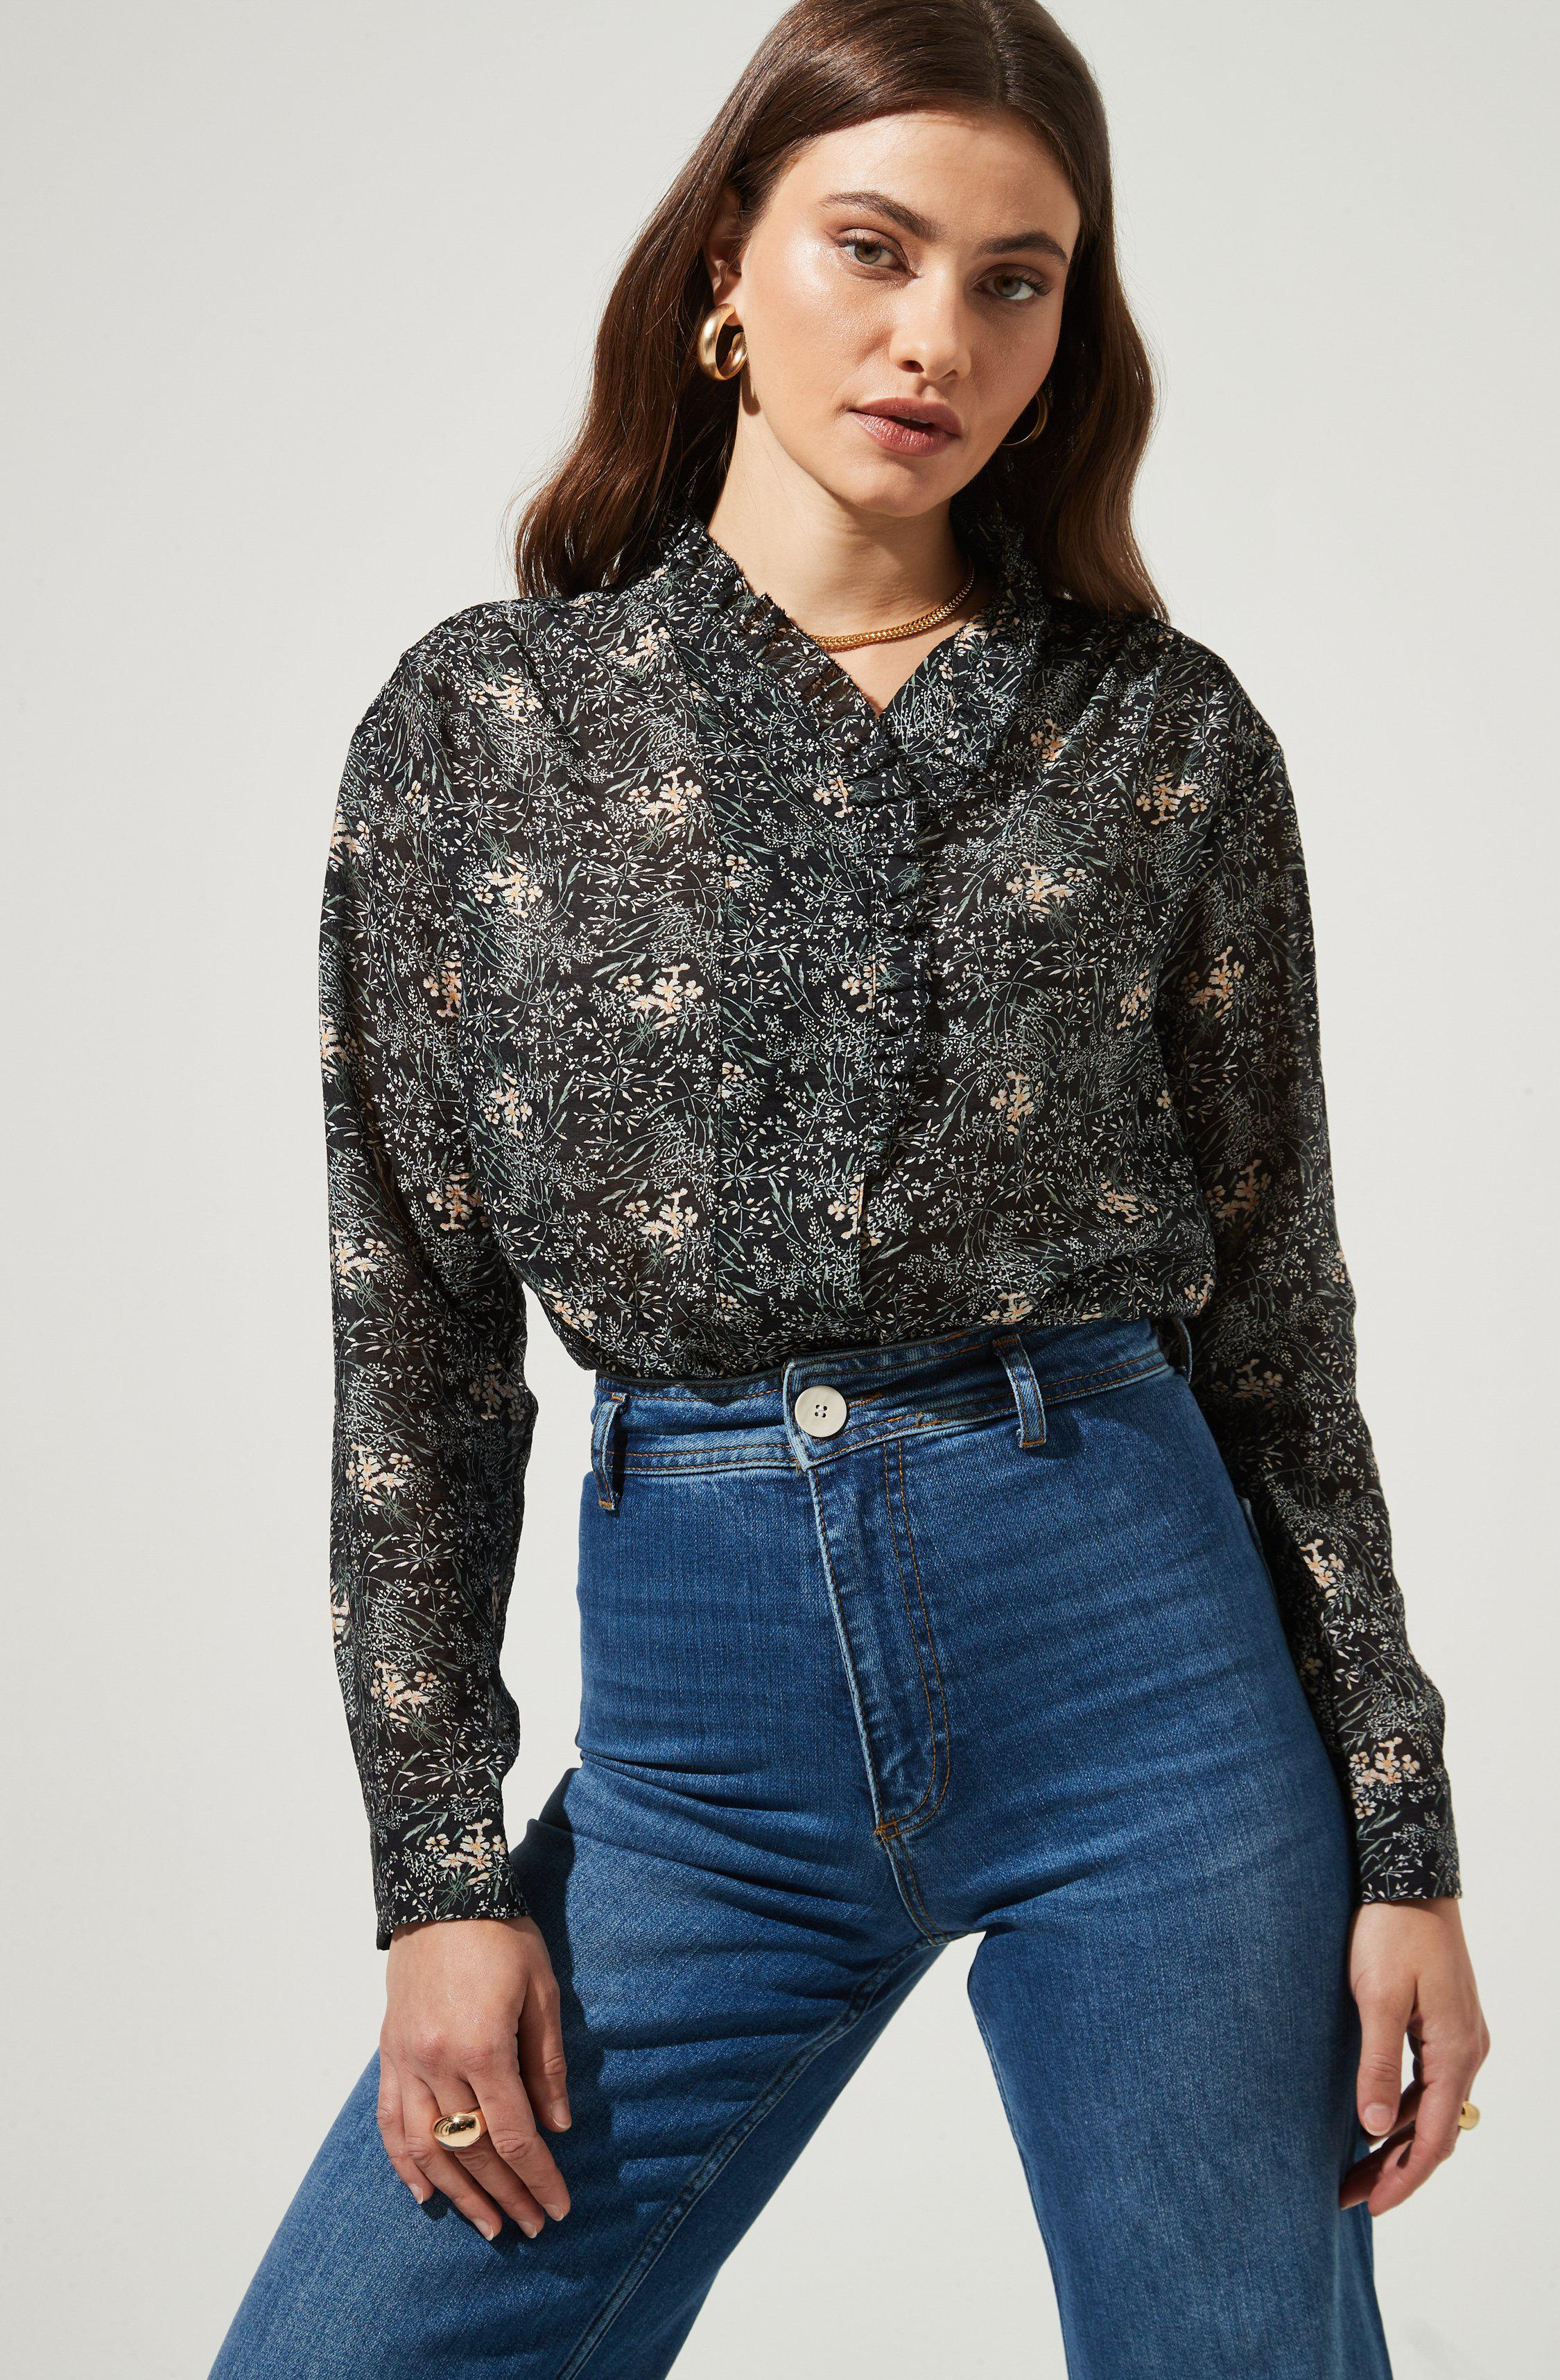 Dear To Me Floral Button Up Top